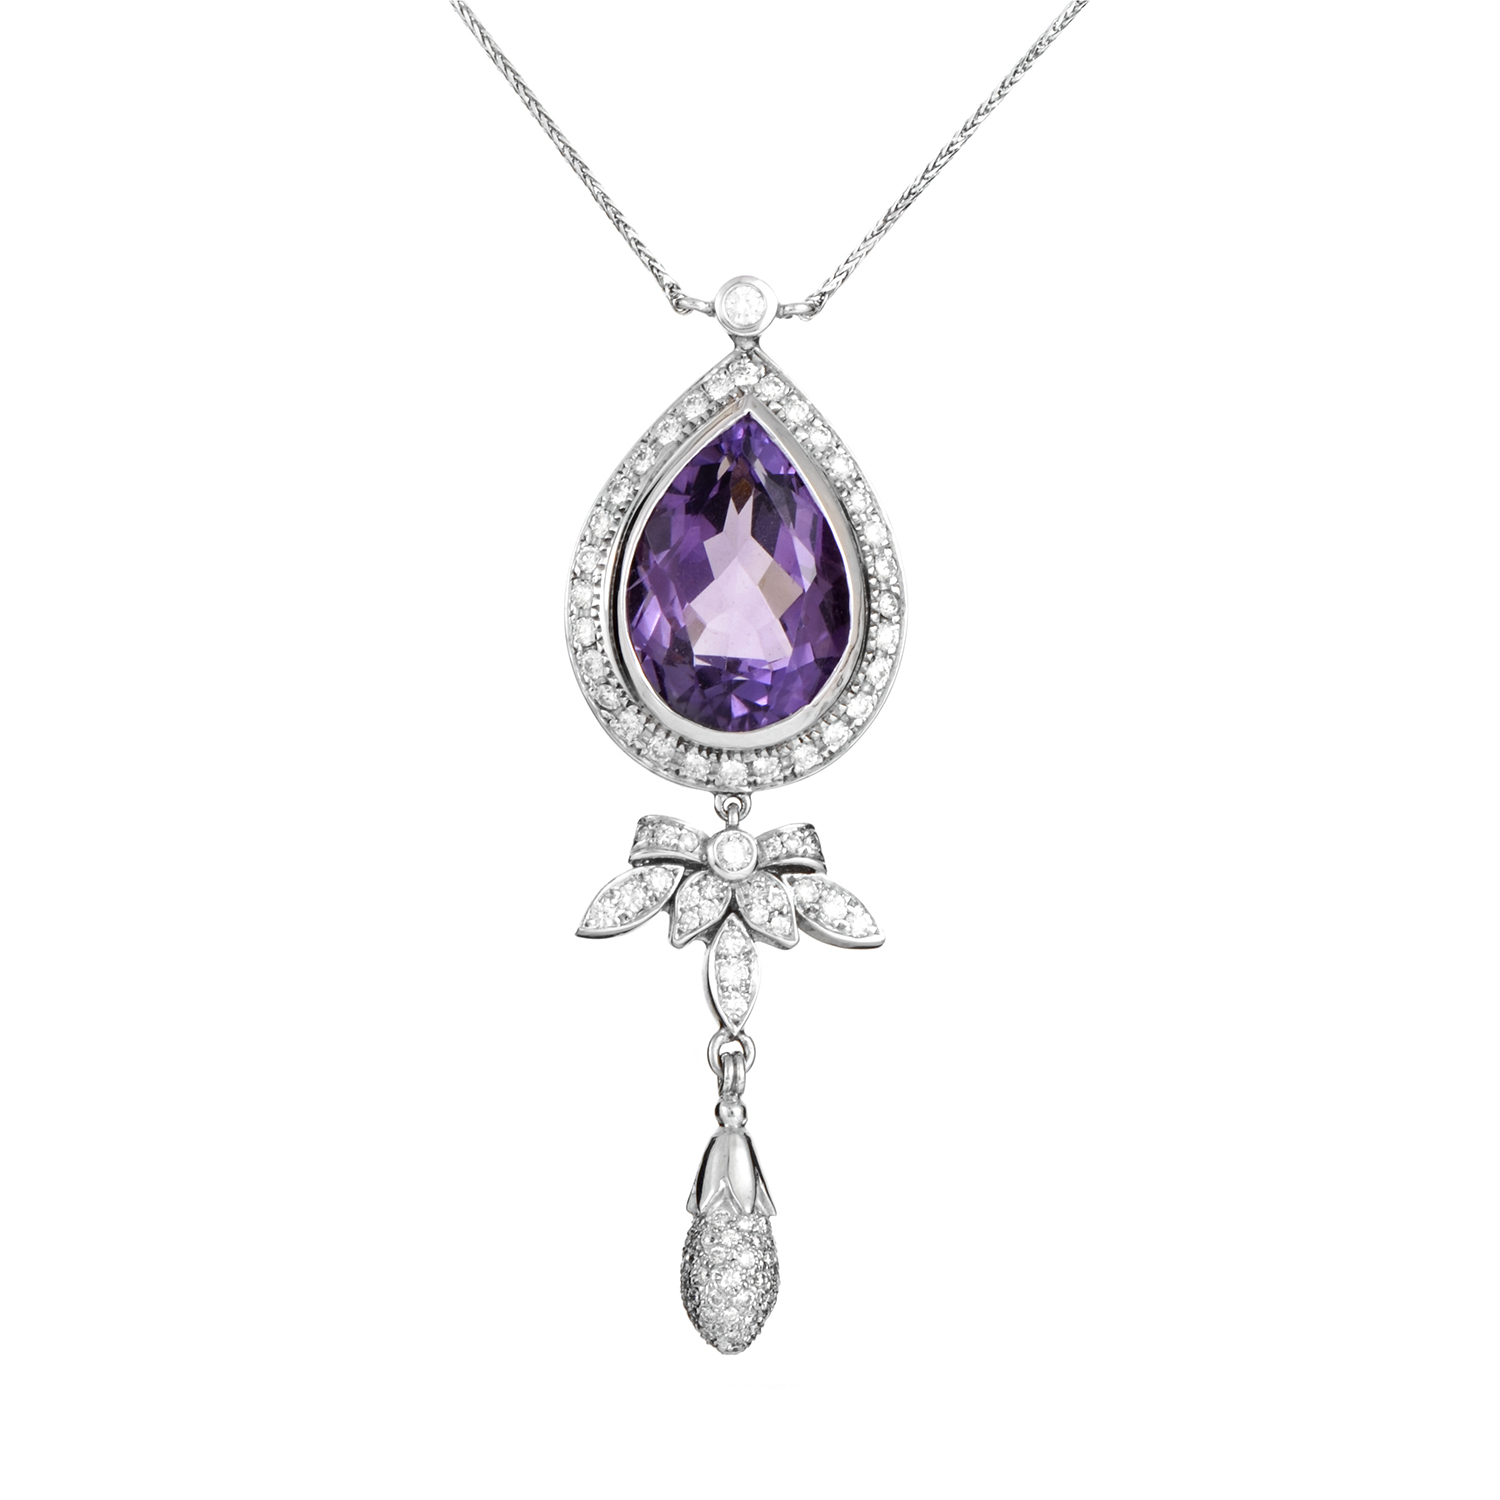 Italian Collection 18K White Gold Diamond & Amethyst Pendant Necklace